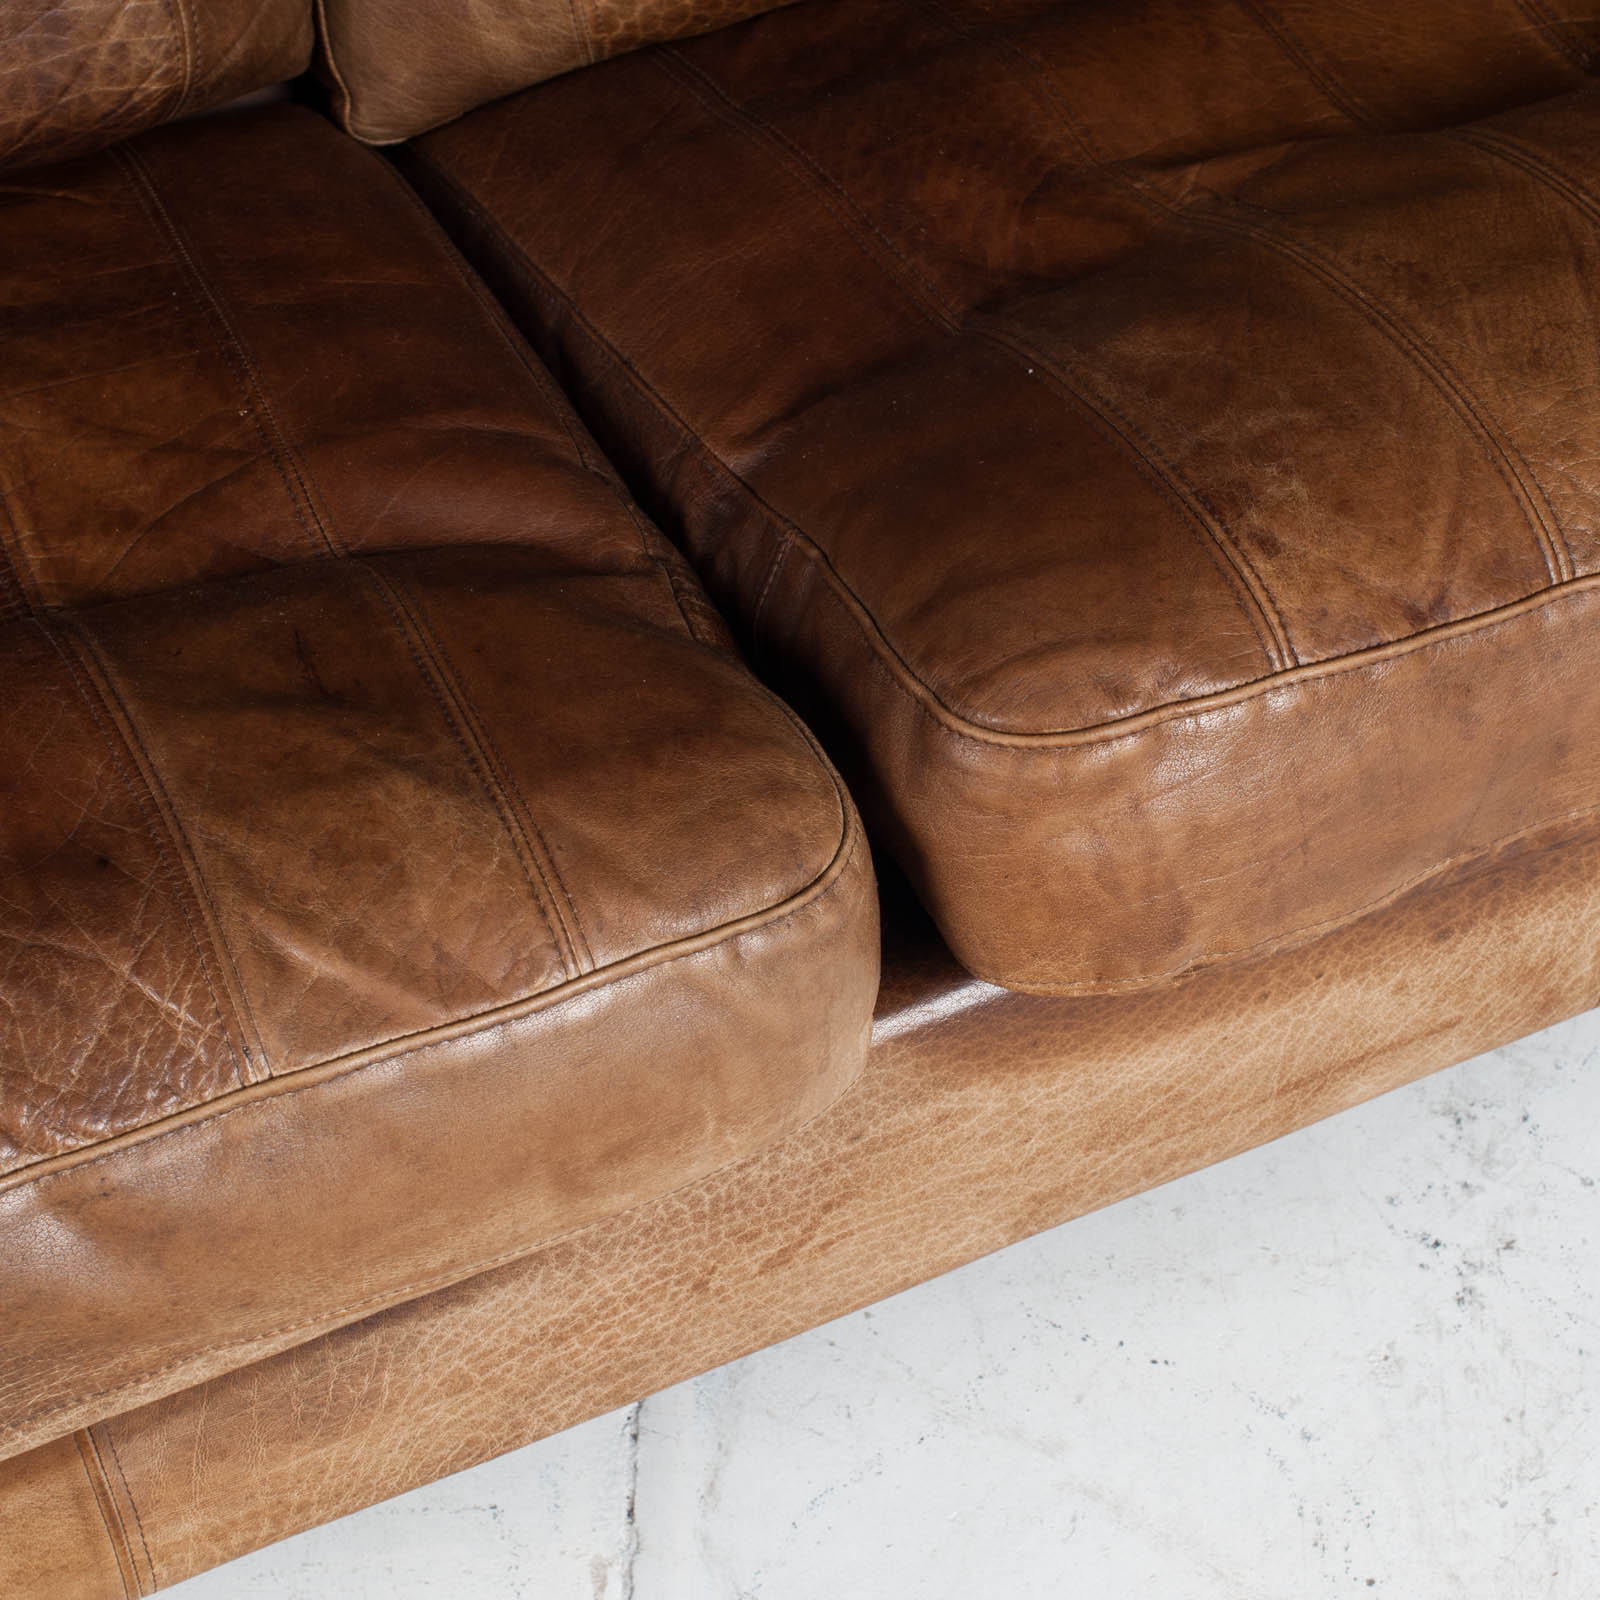 2.5 Seat Sofa In Tan Panelled Leather 1960s Denmark12